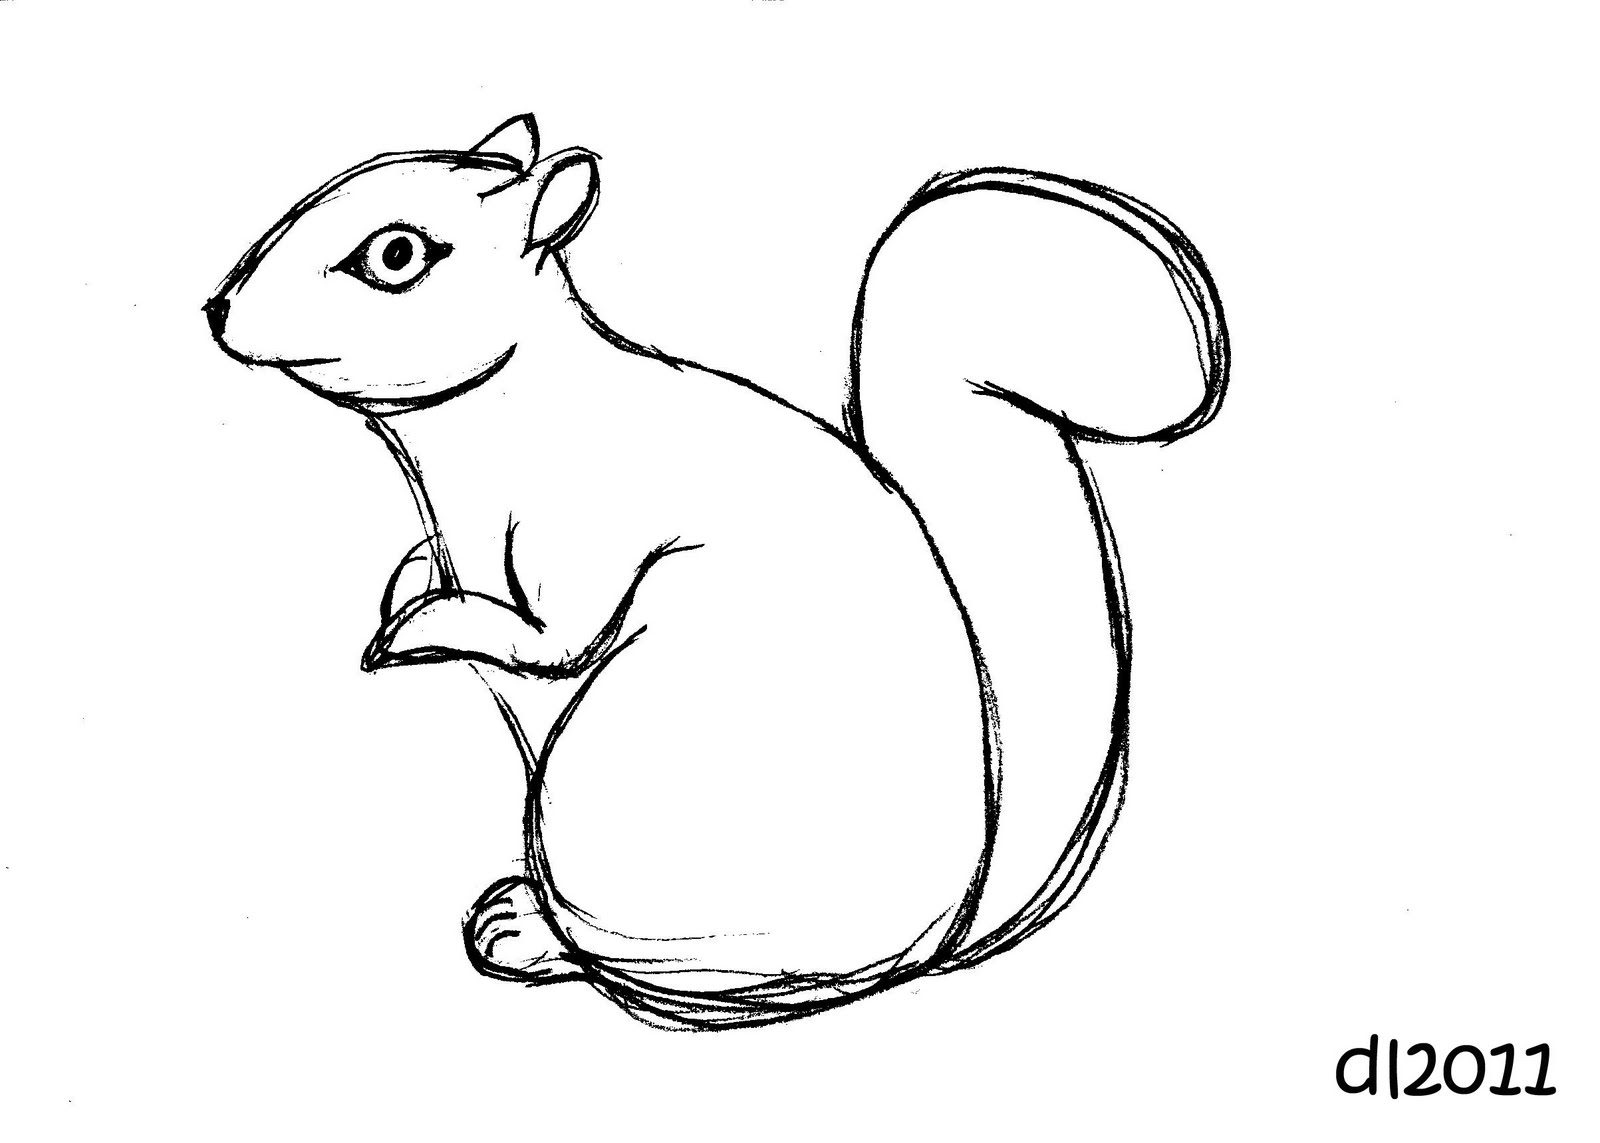 Drawn rodent basic Drawing squirrel%20drawing Clipart Panda Free